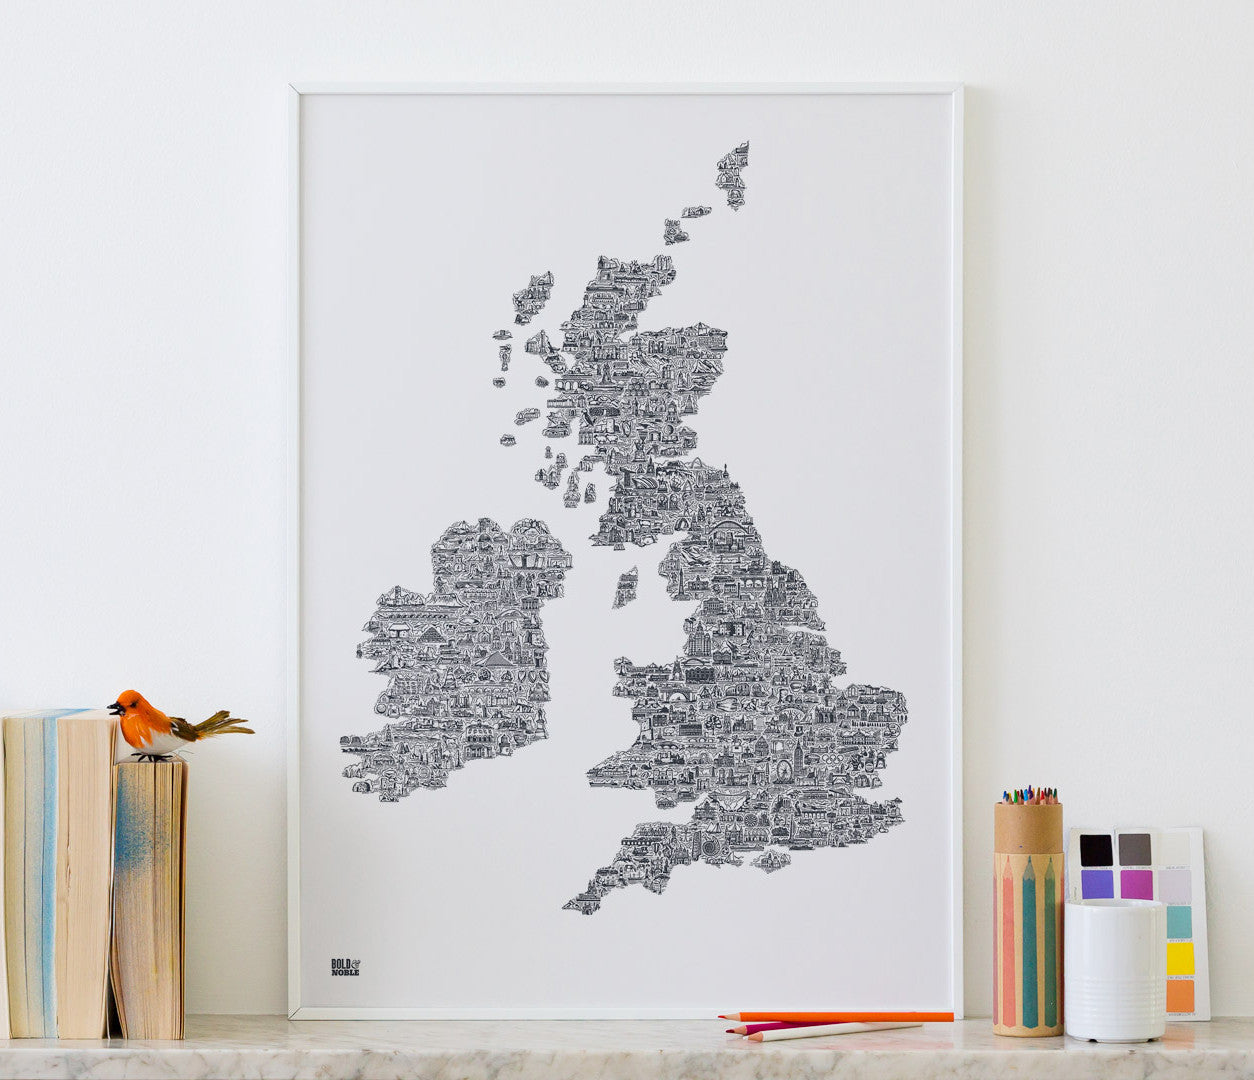 'UK and Ireland' Illustrated Map in Sheer Slate